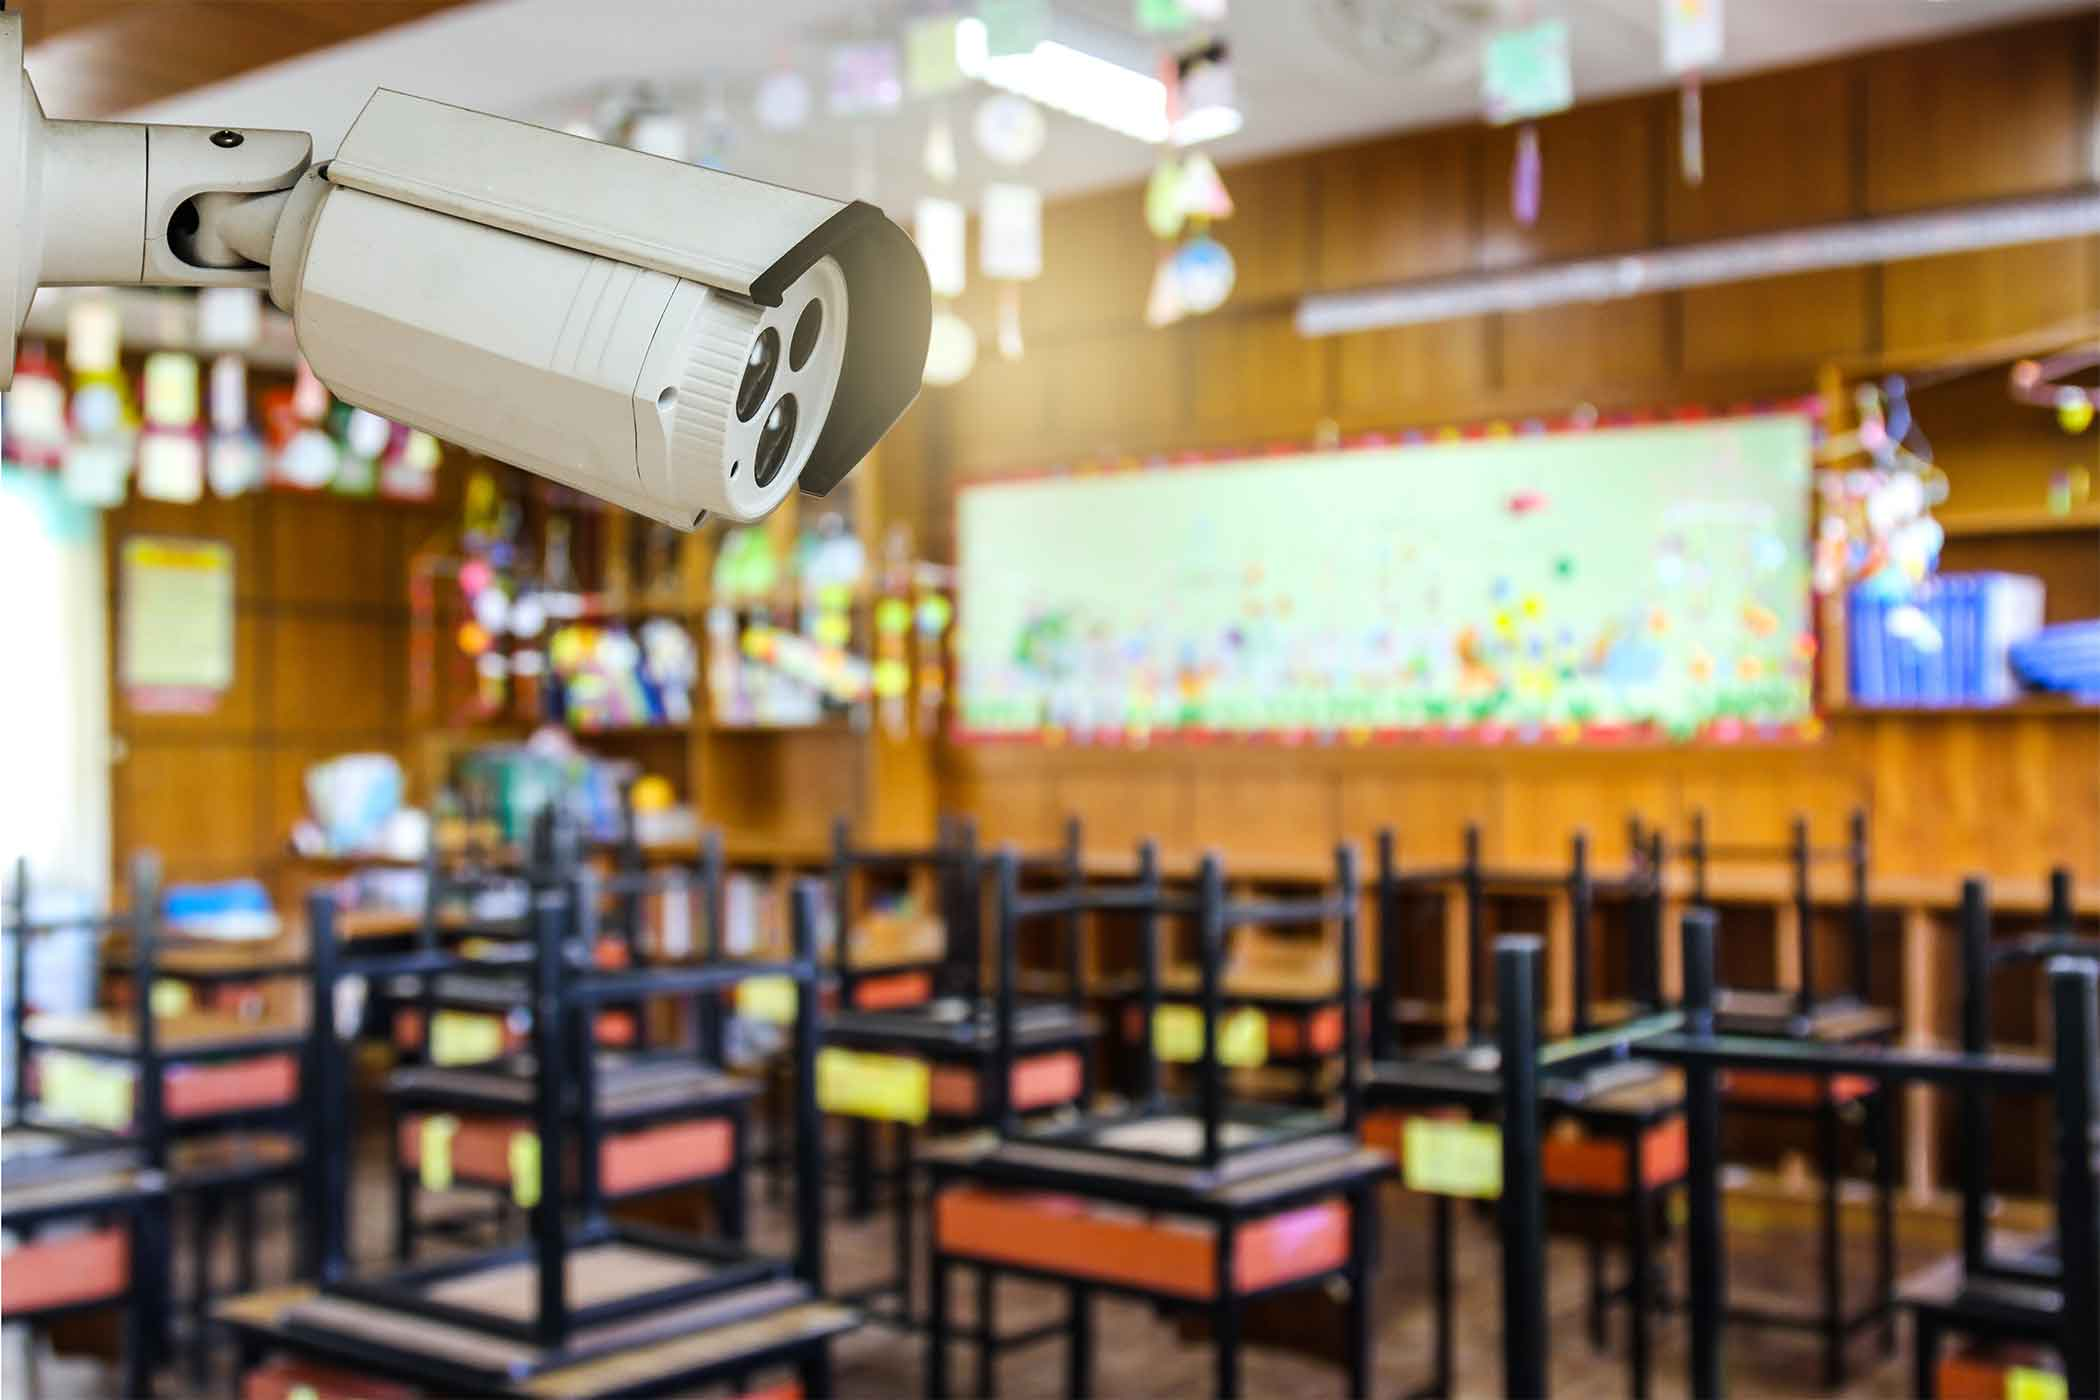 CCTV in Schools: Benefits, Drawbacks and Obstacles